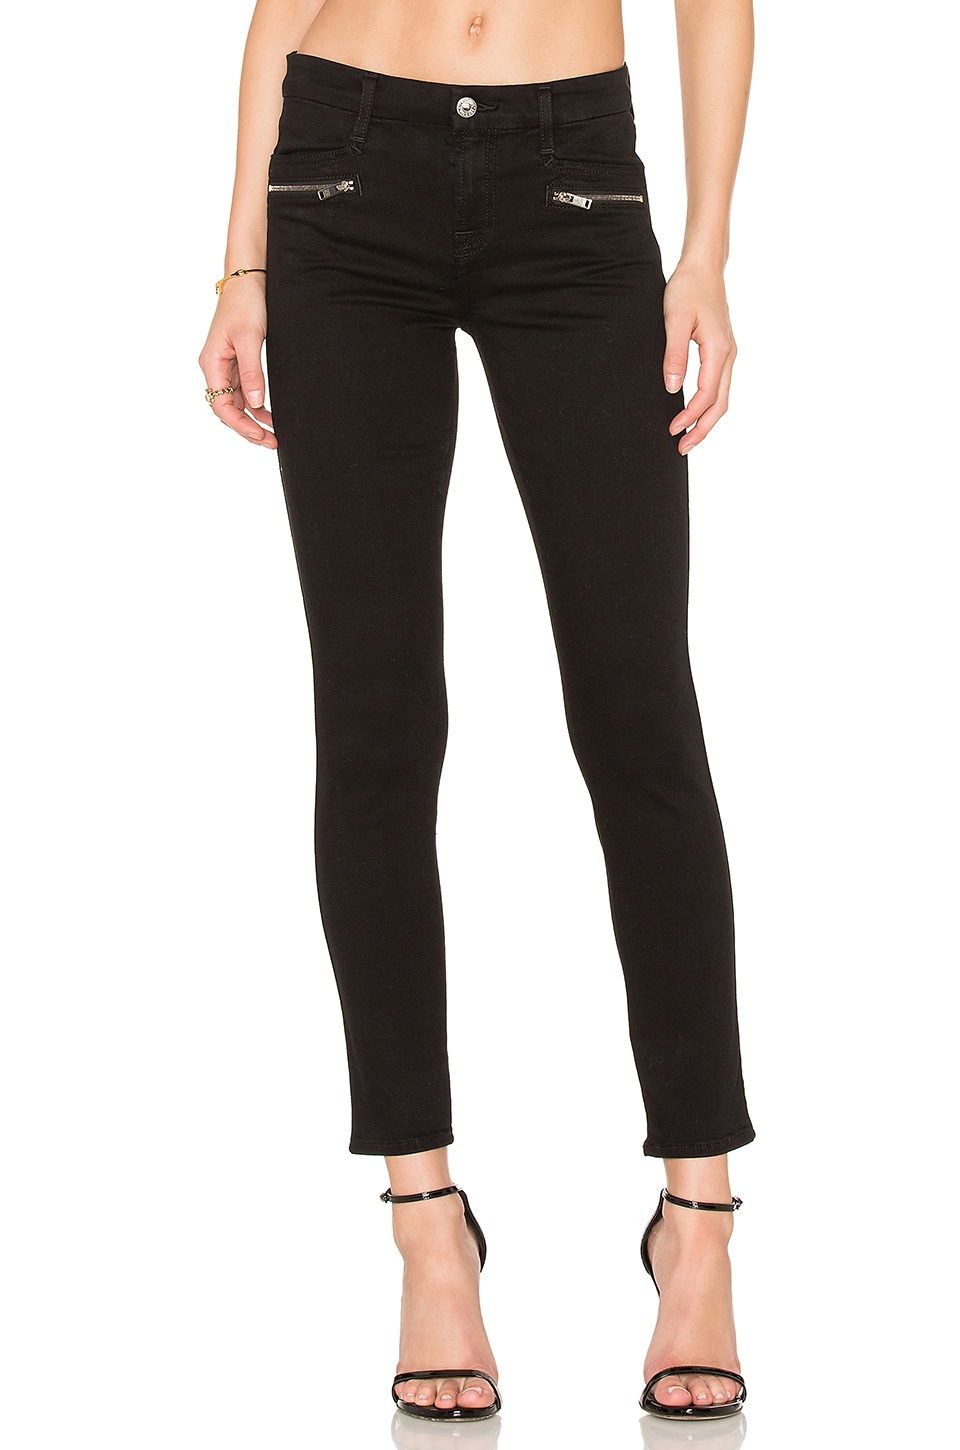 The Zip Front Ankle Skinny by 7 For All Mankind